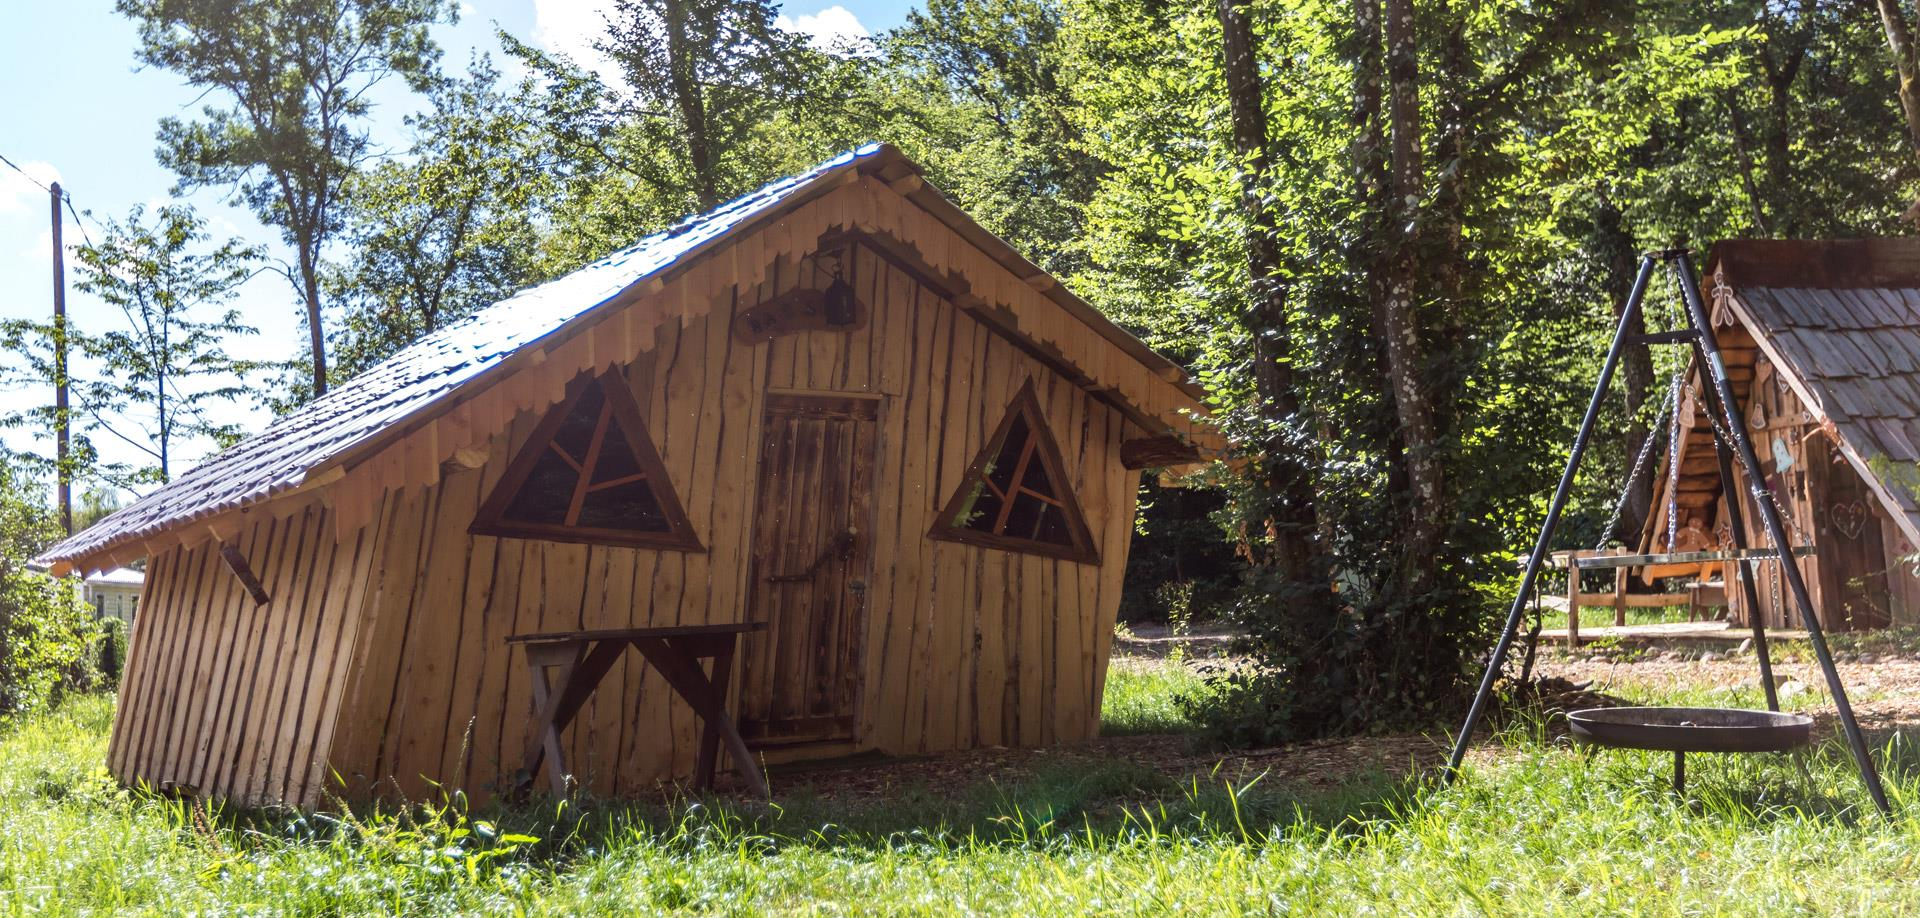 Outside view of the Wooden Hut of Hansel rental of atypical cabins in the Haut-Rhin at the Campsite Les Castors